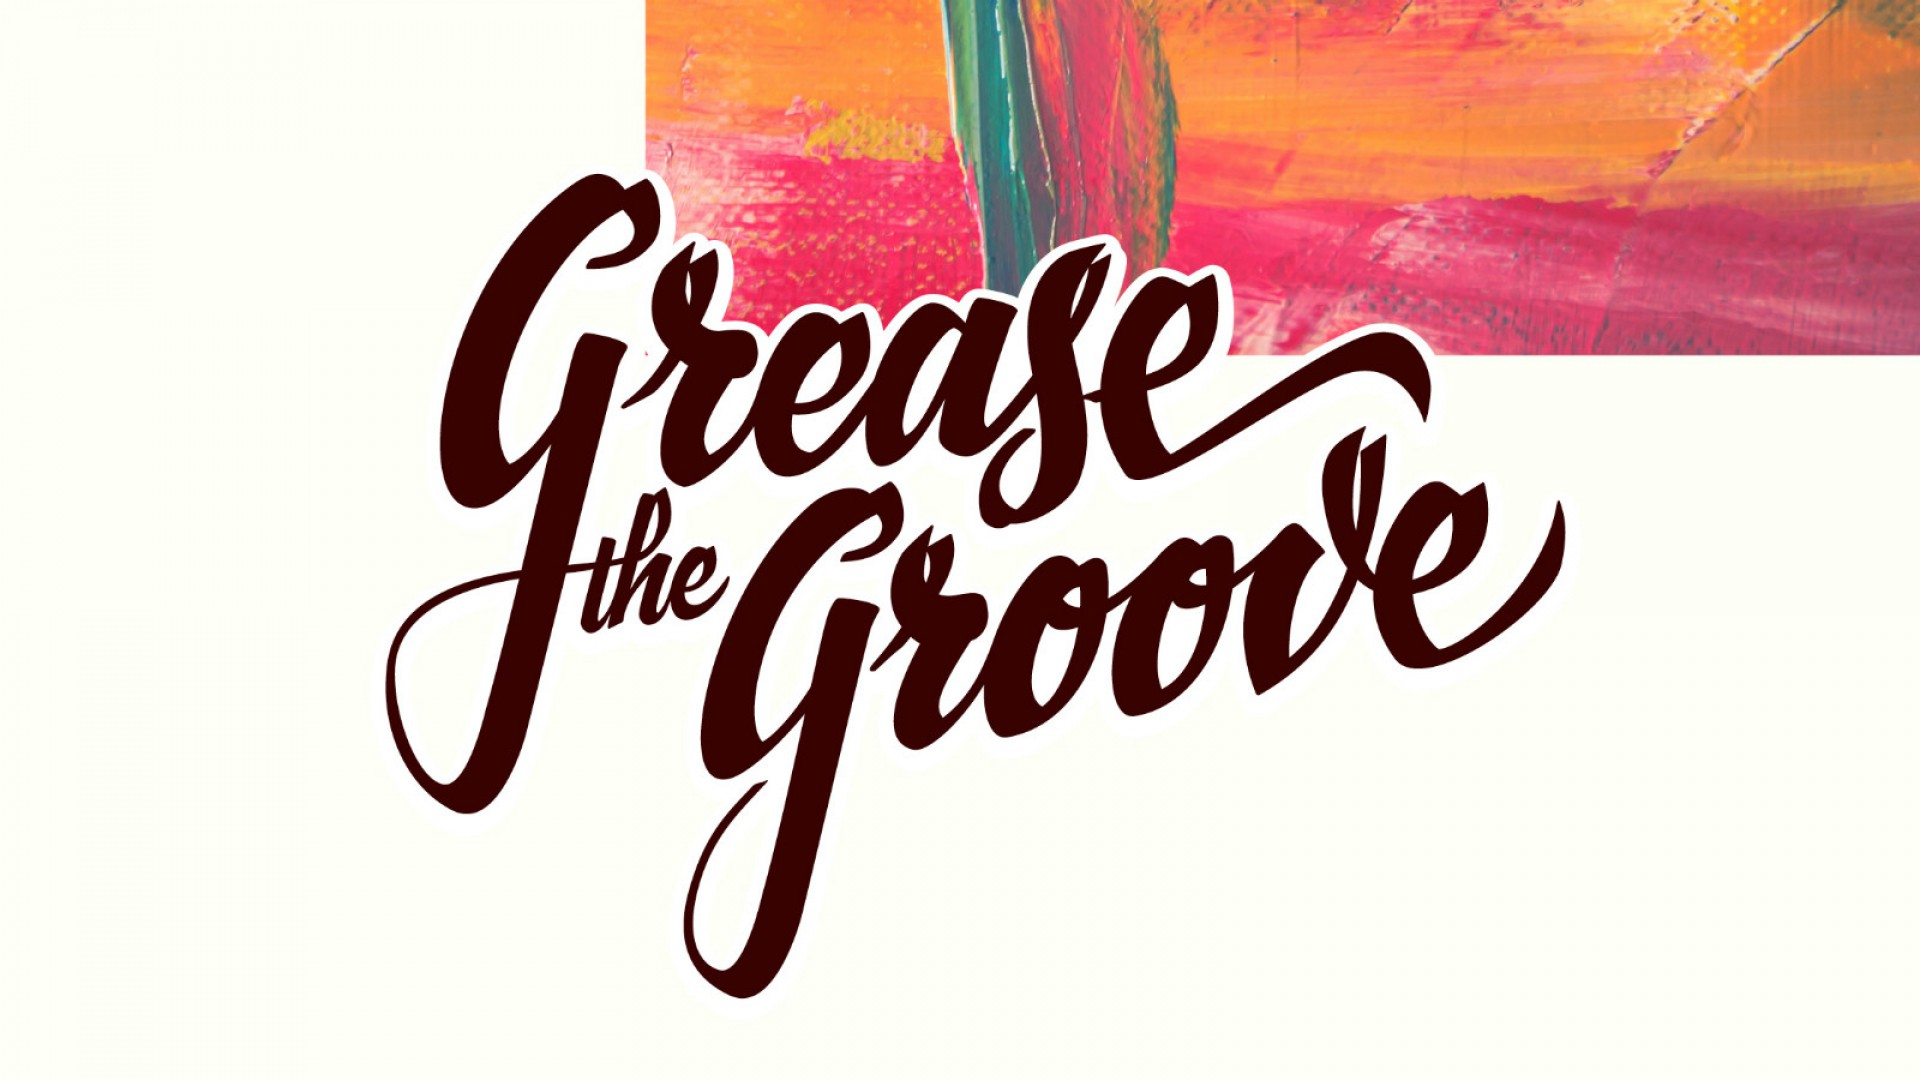 Mr. Leenknecht's selected logo's - Grease the Groove Sam Loos party concept script logo brush script logo Antwerp